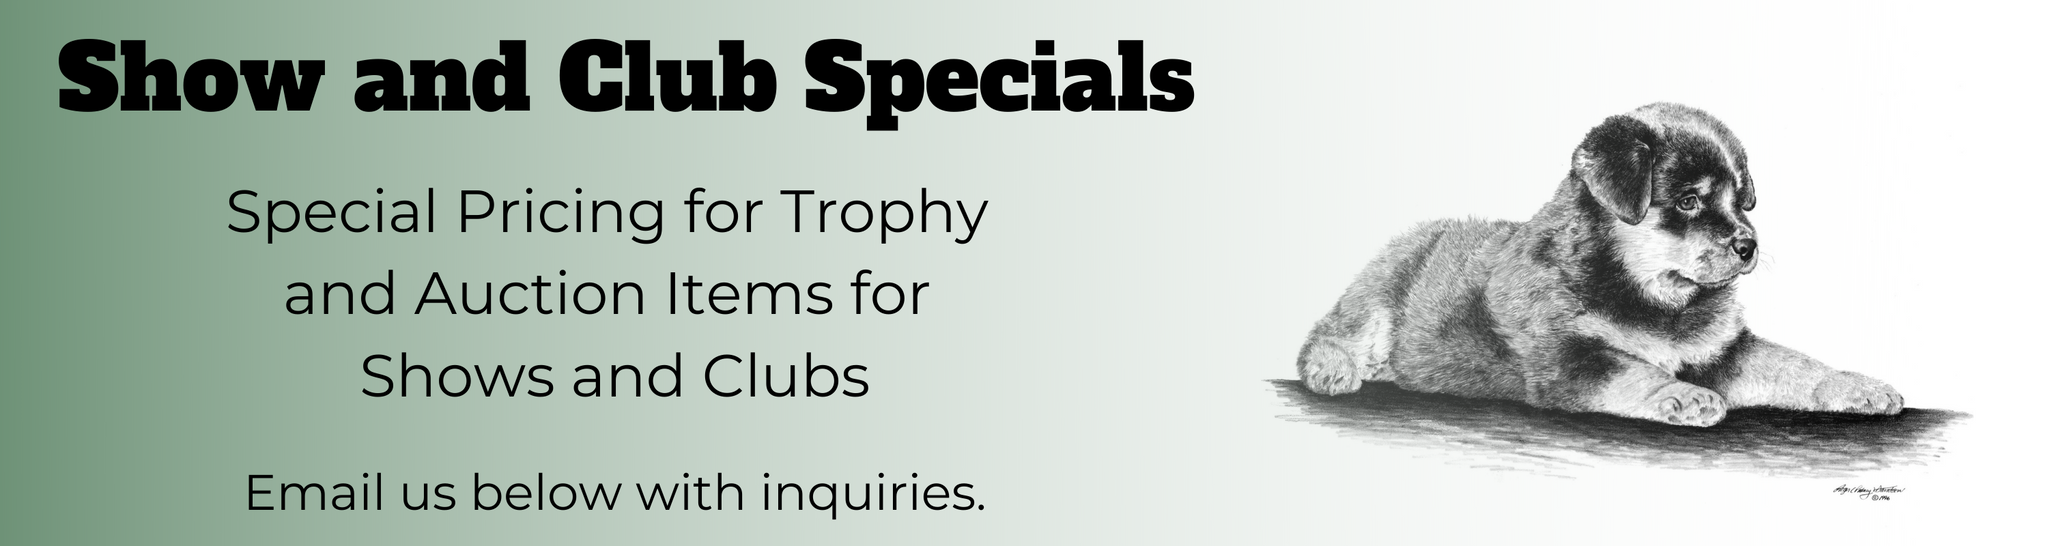 Show and Club Specials